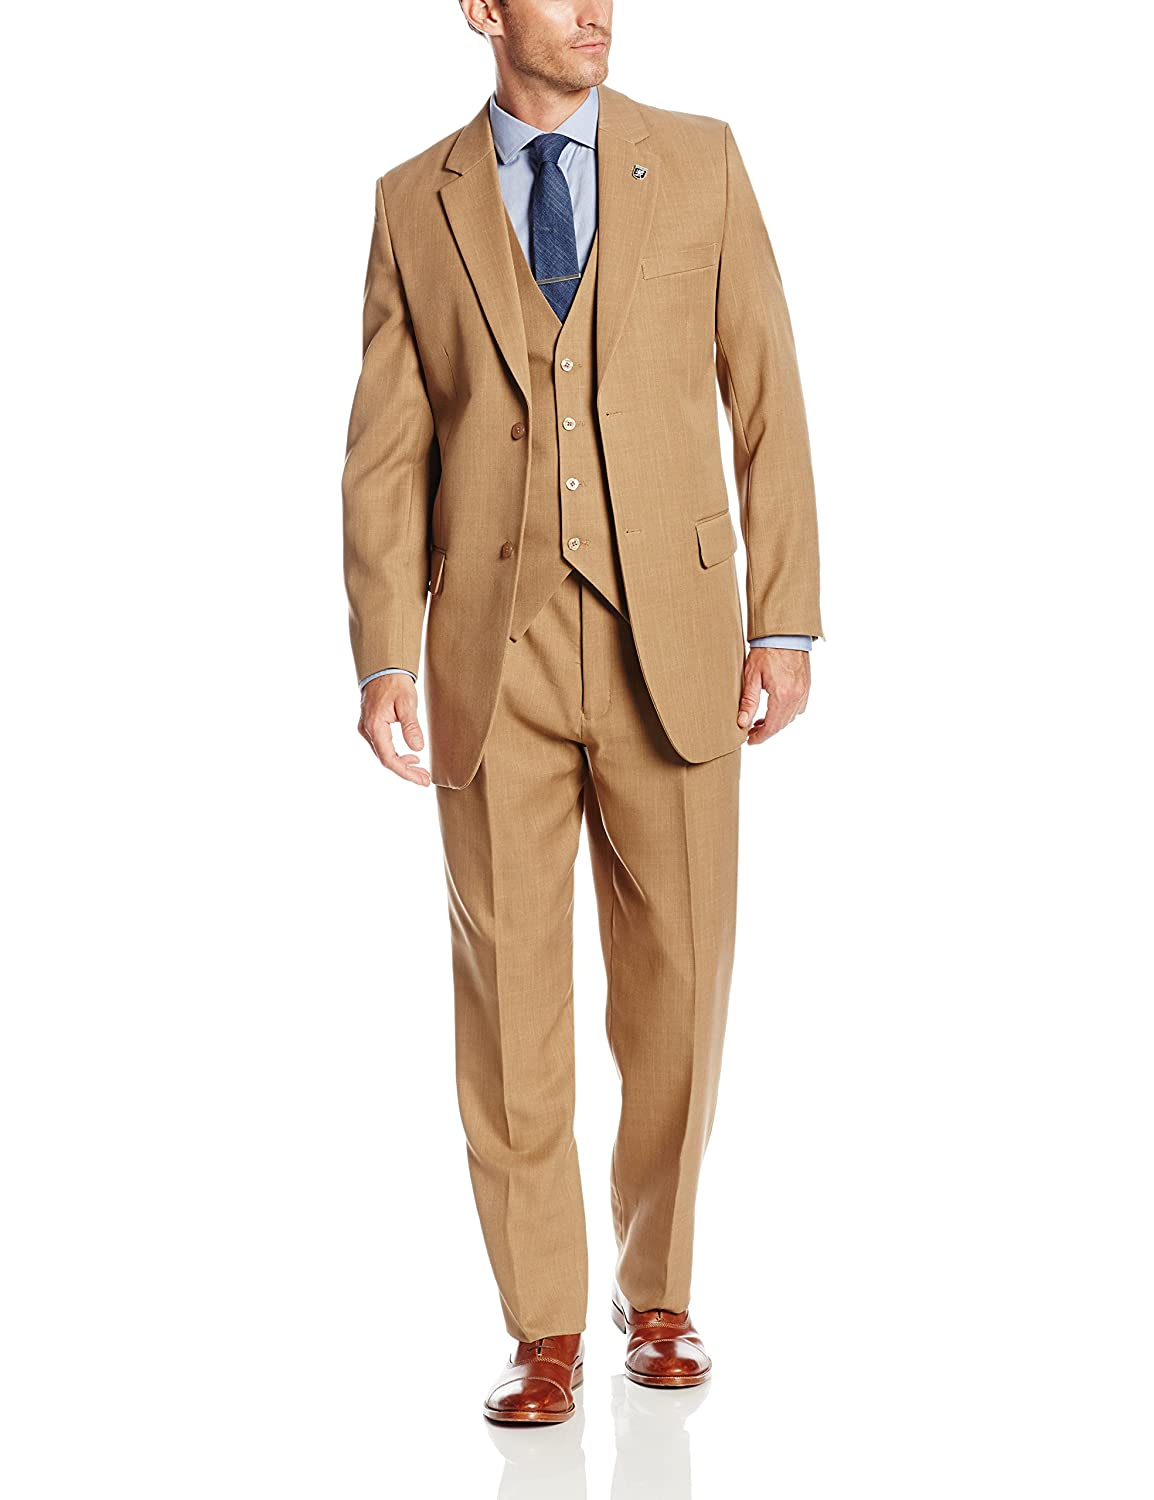 Men's Vintage Style Suits, Classic Suits STACY ADAMS Mens Suny Vested 3 Piece Suit $177.97 AT vintagedancer.com